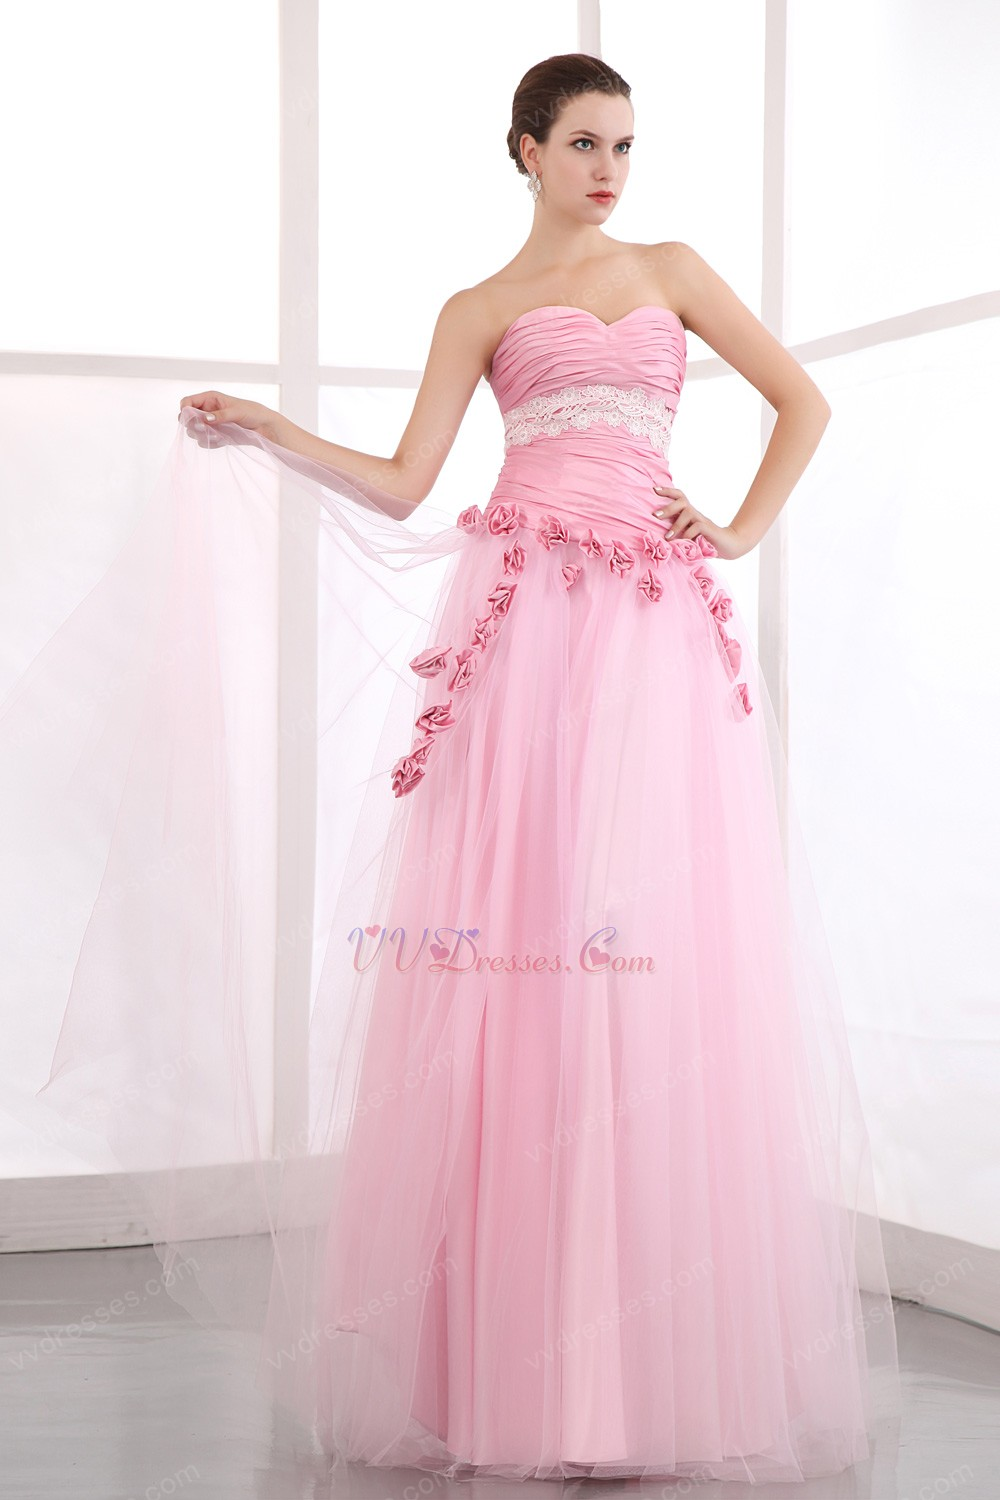 Pretty Sweetheart Pink Net Skirt Prom Dress With Flowers Decorate